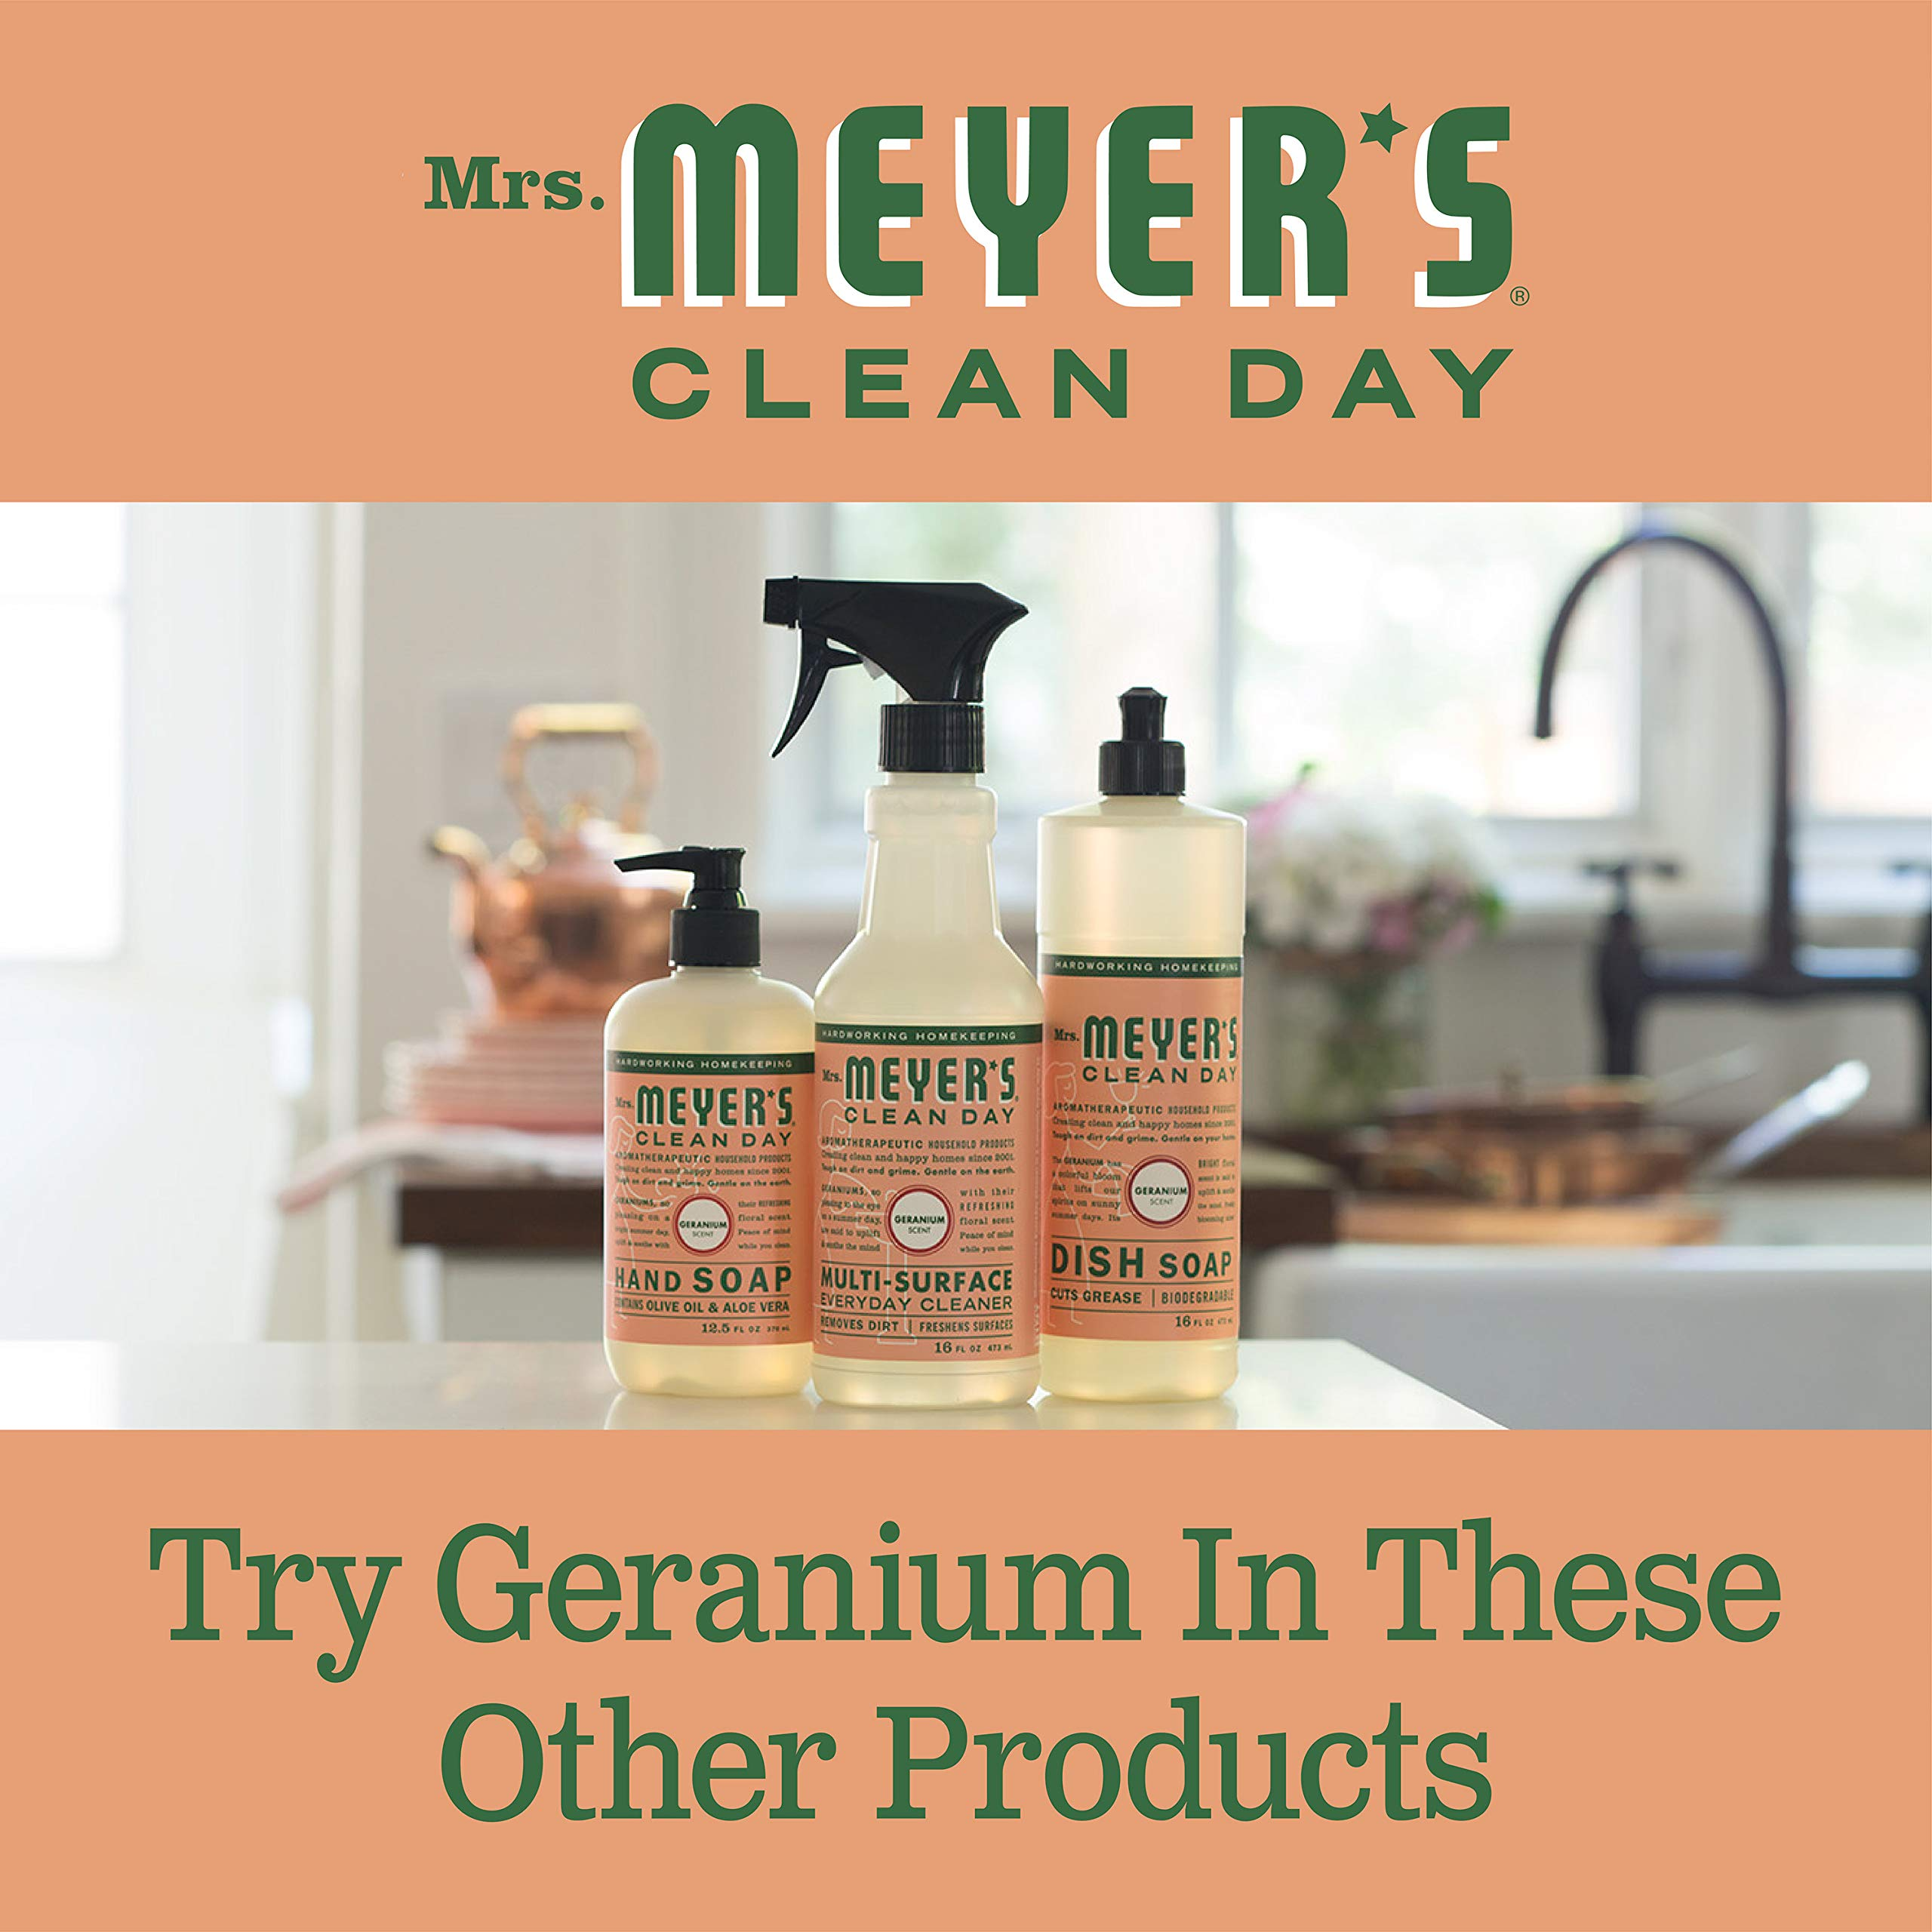 Mrs. Meyer's Clean Day Multi-Surface Concentrate, Geranium, 32 fl oz, 2 ct by Mrs. Meyer's Clean Day (Image #8)